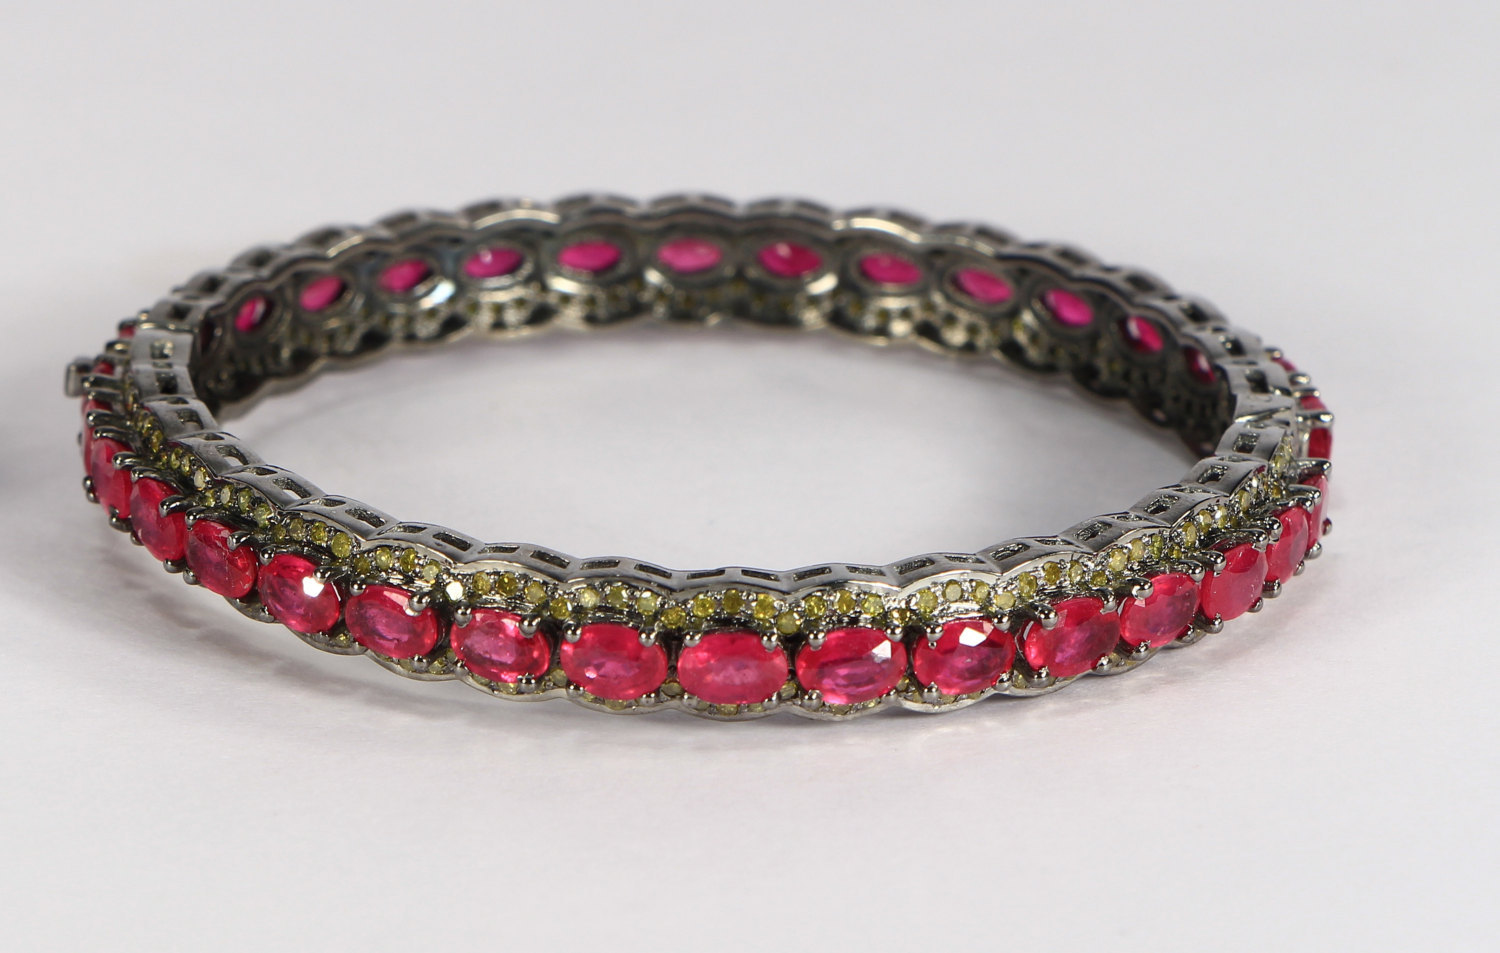 Round Women Openable Bangle .925 Sterling Silver with Ruby & Colored Diamonds